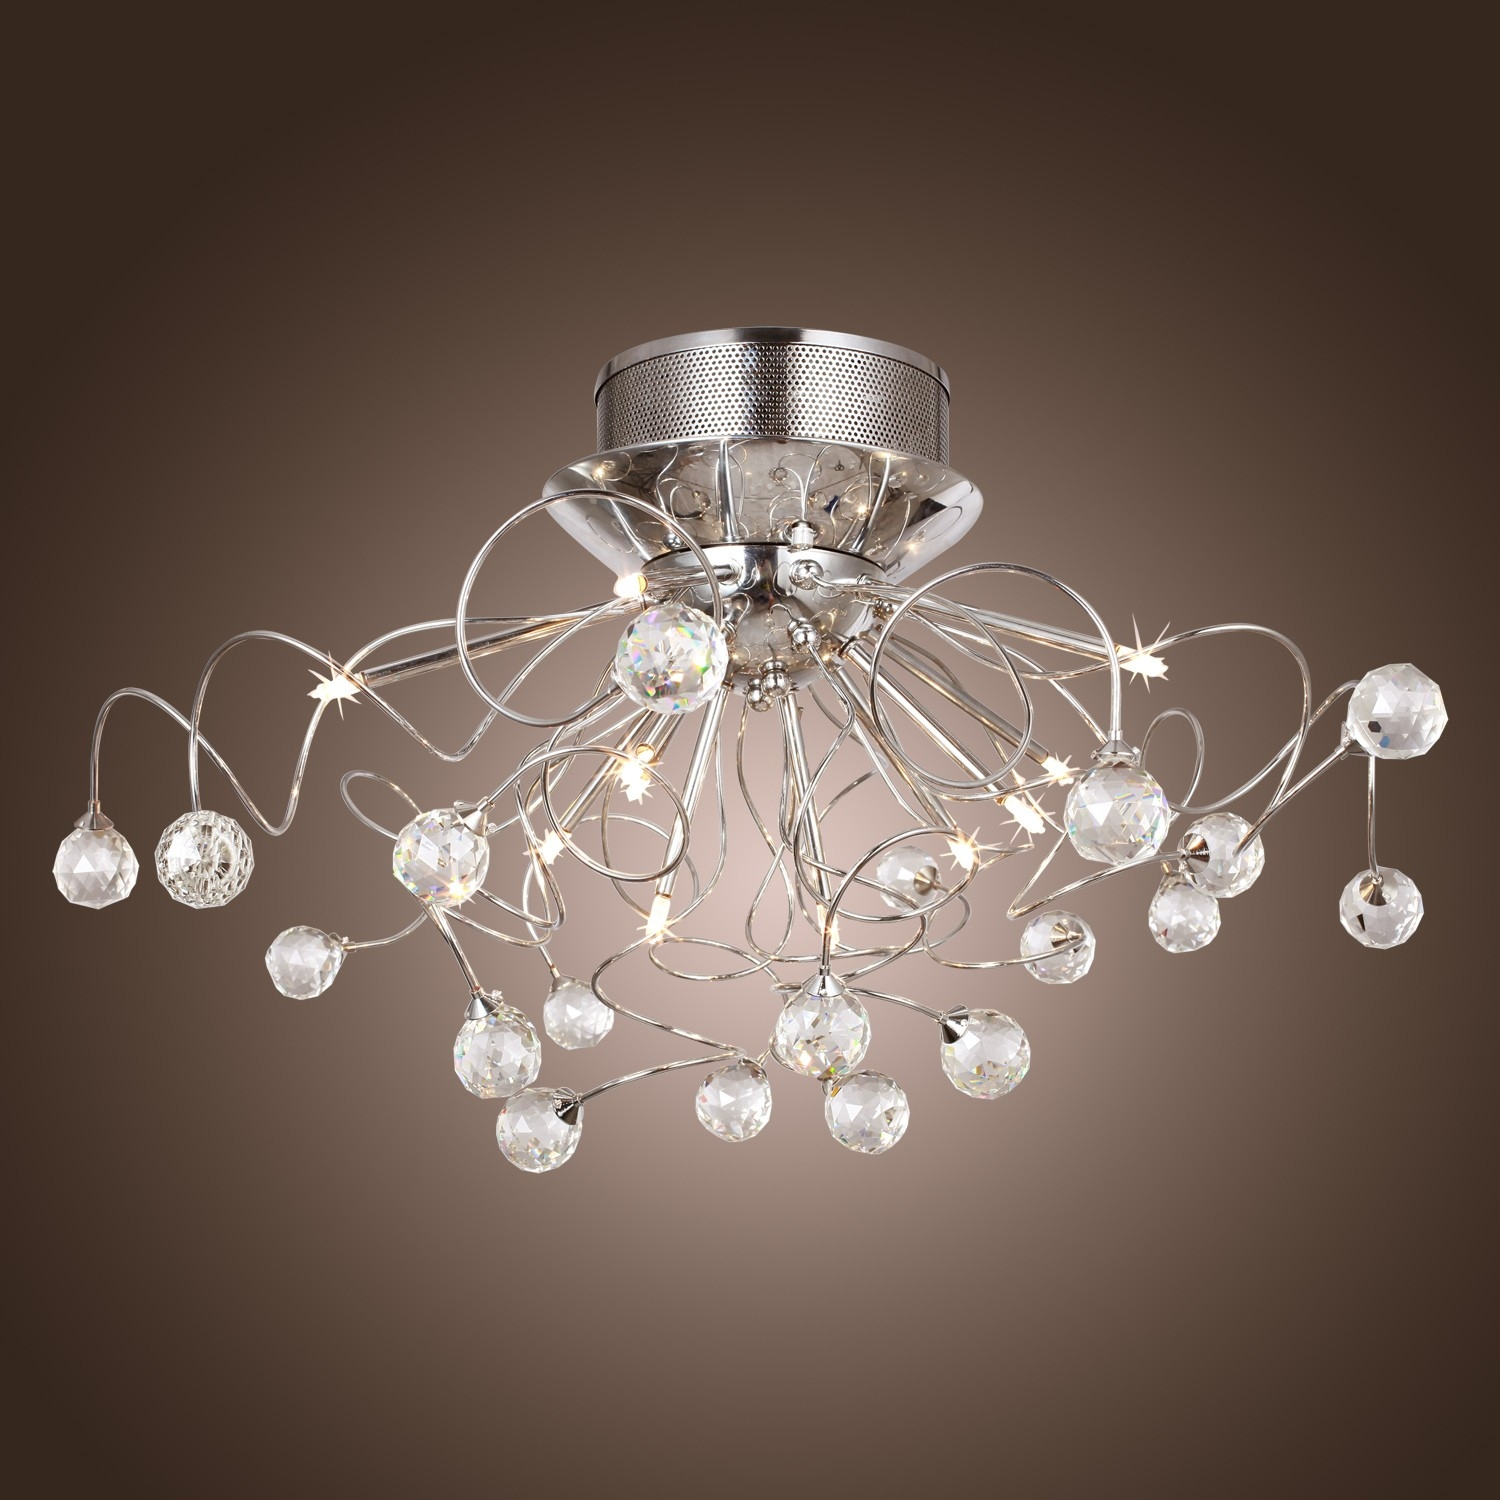 Modern Crystal Chandelier With 11 Lights Chrom Flush Mount Throughout Modern Light Chandelier (Image 8 of 15)